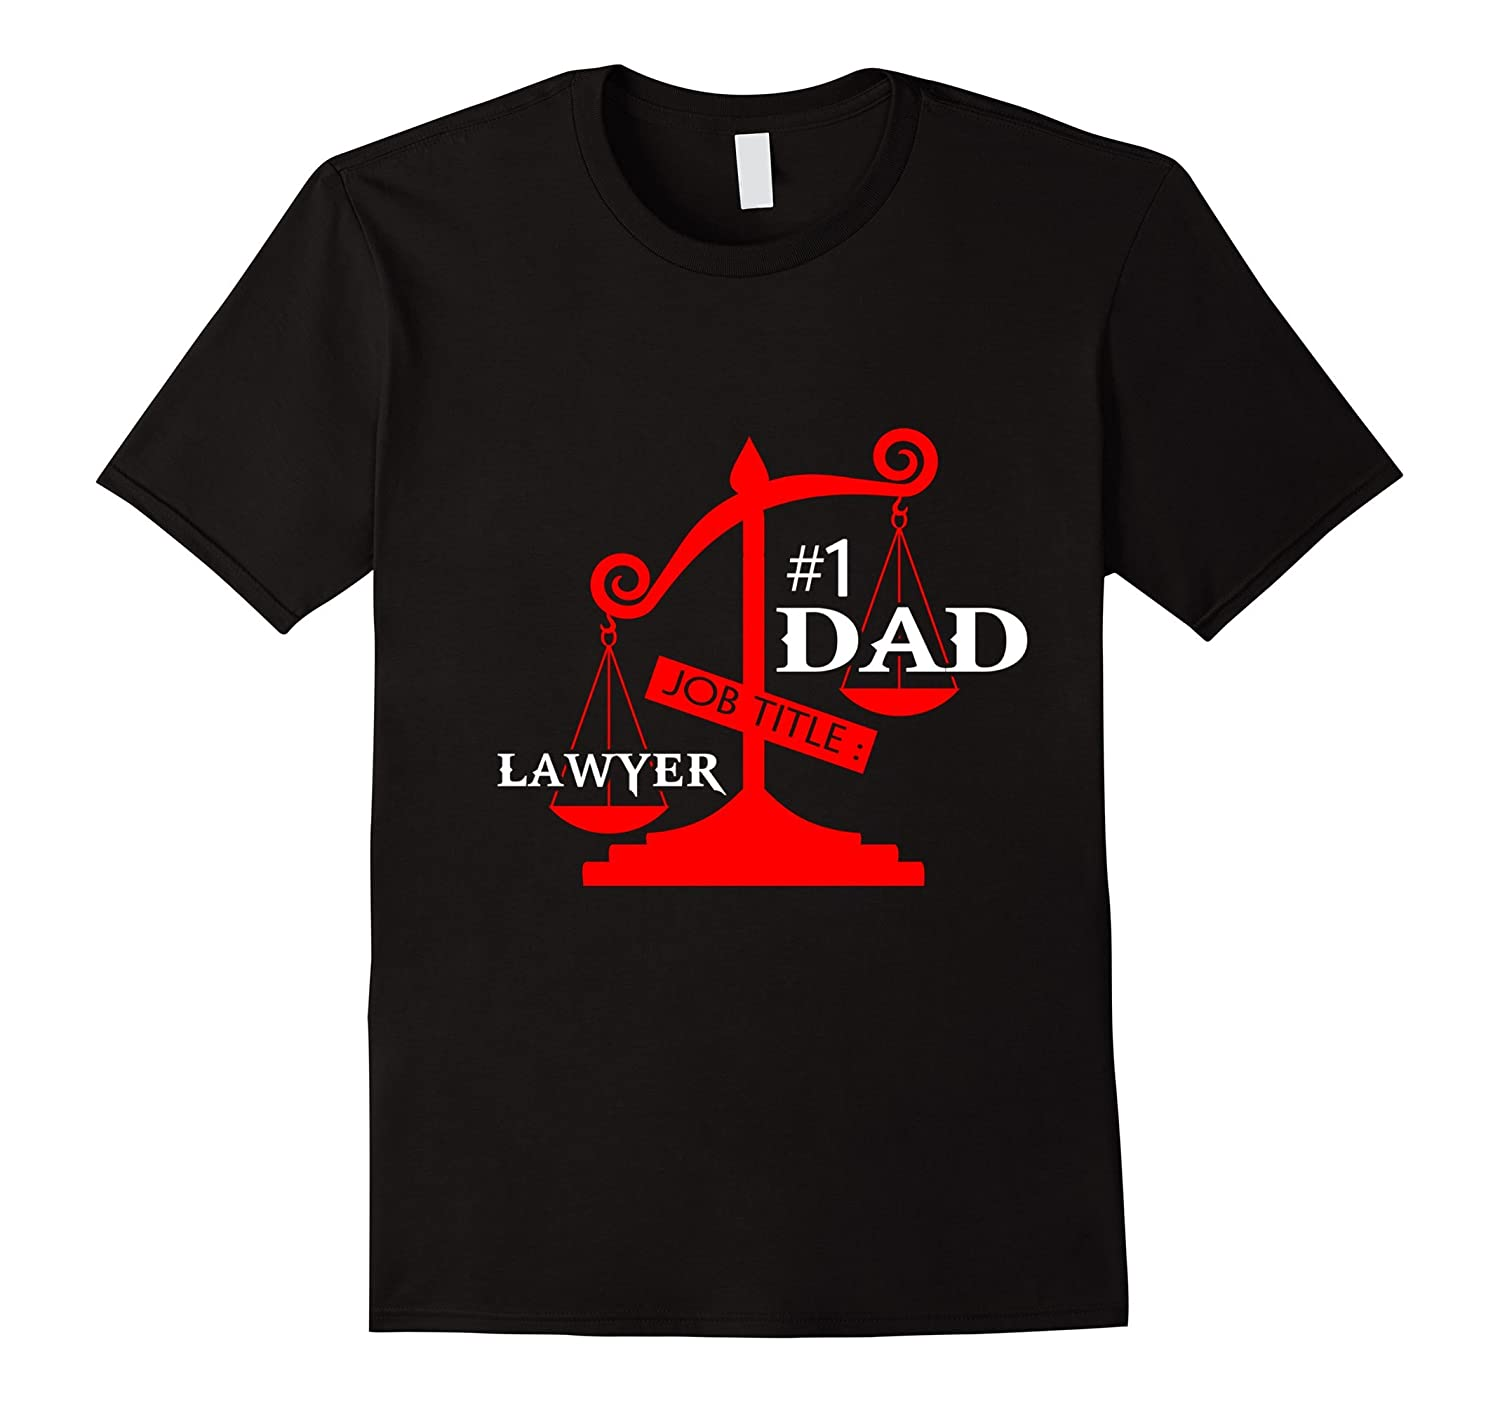 Dad Shirts From DaughterSon Lawyer Gifts for Fathers Day-TH